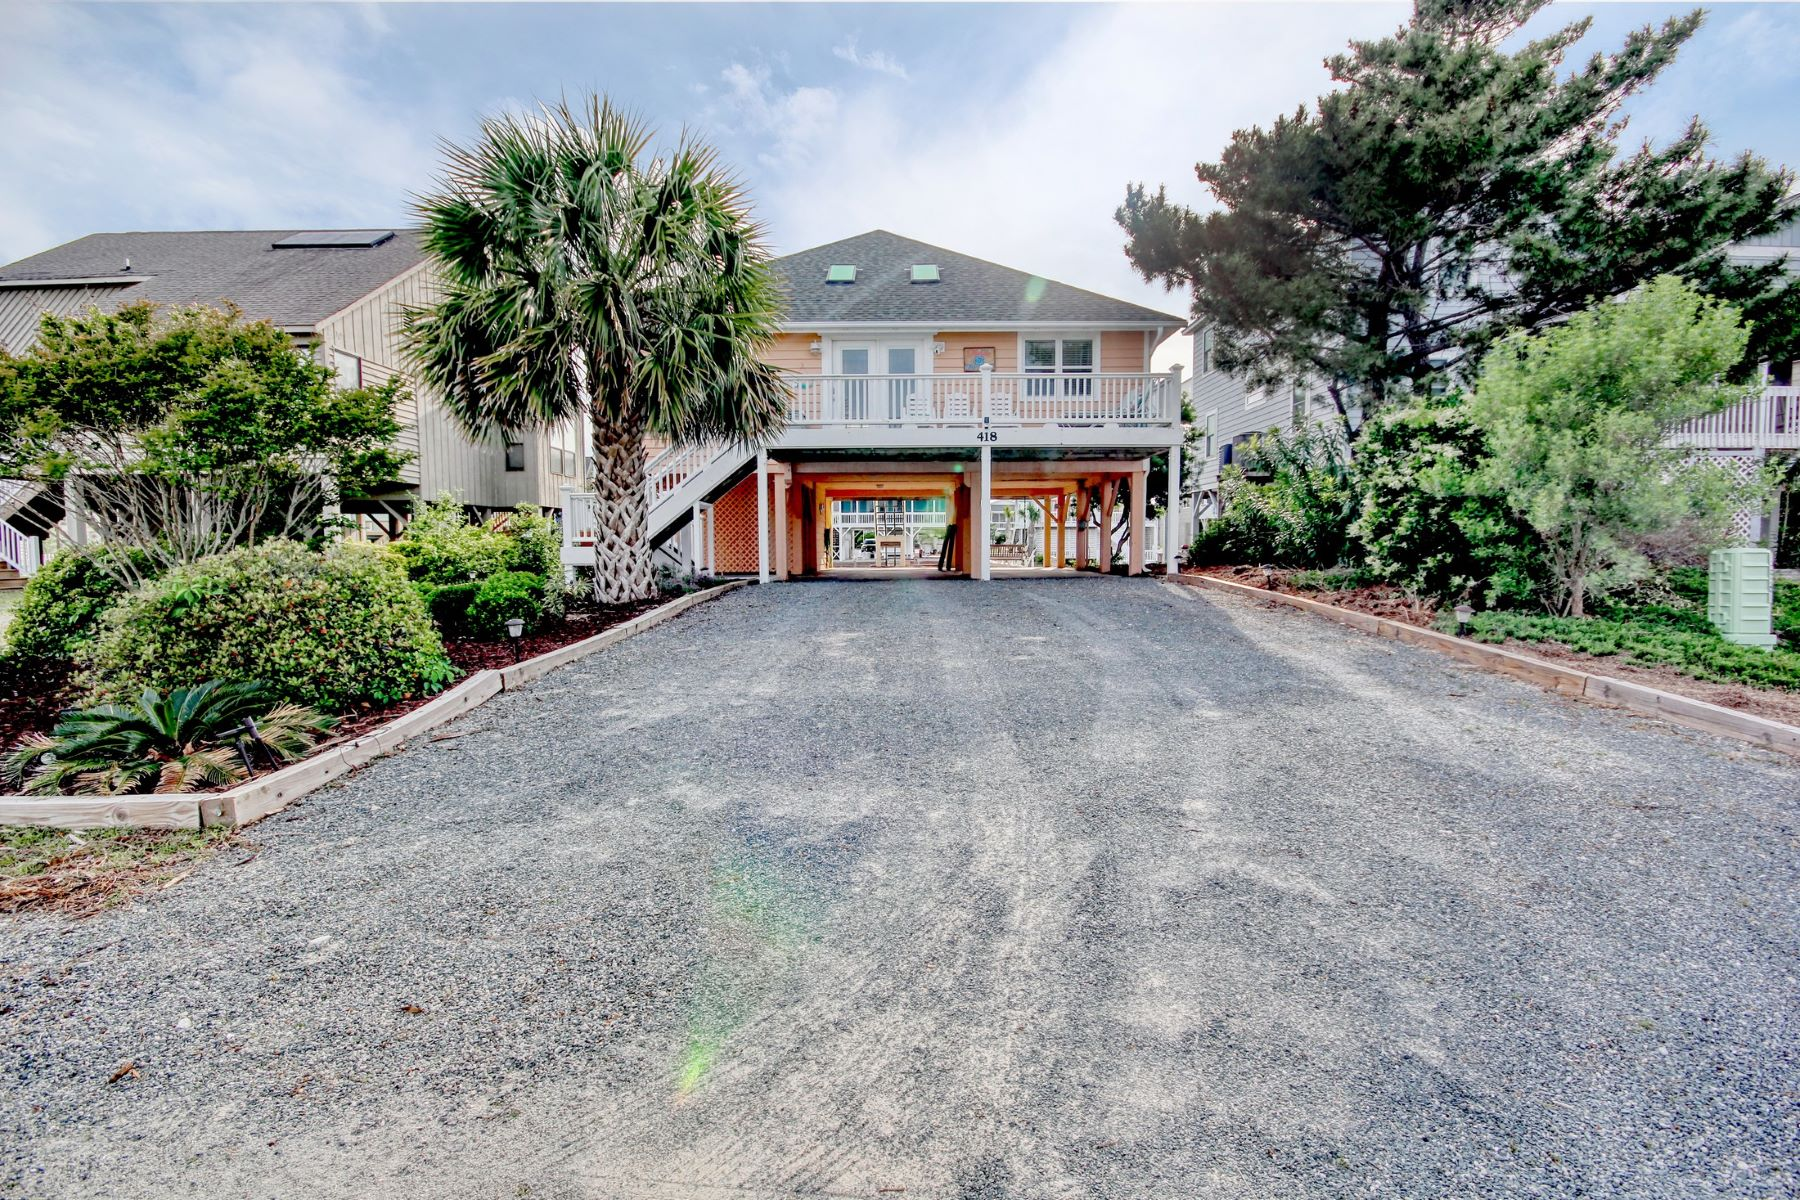 Single Family Homes for Sale at Canal Front Home in Sunset Beach 418 Sailfish St Sunset Beach, North Carolina 28468 United States